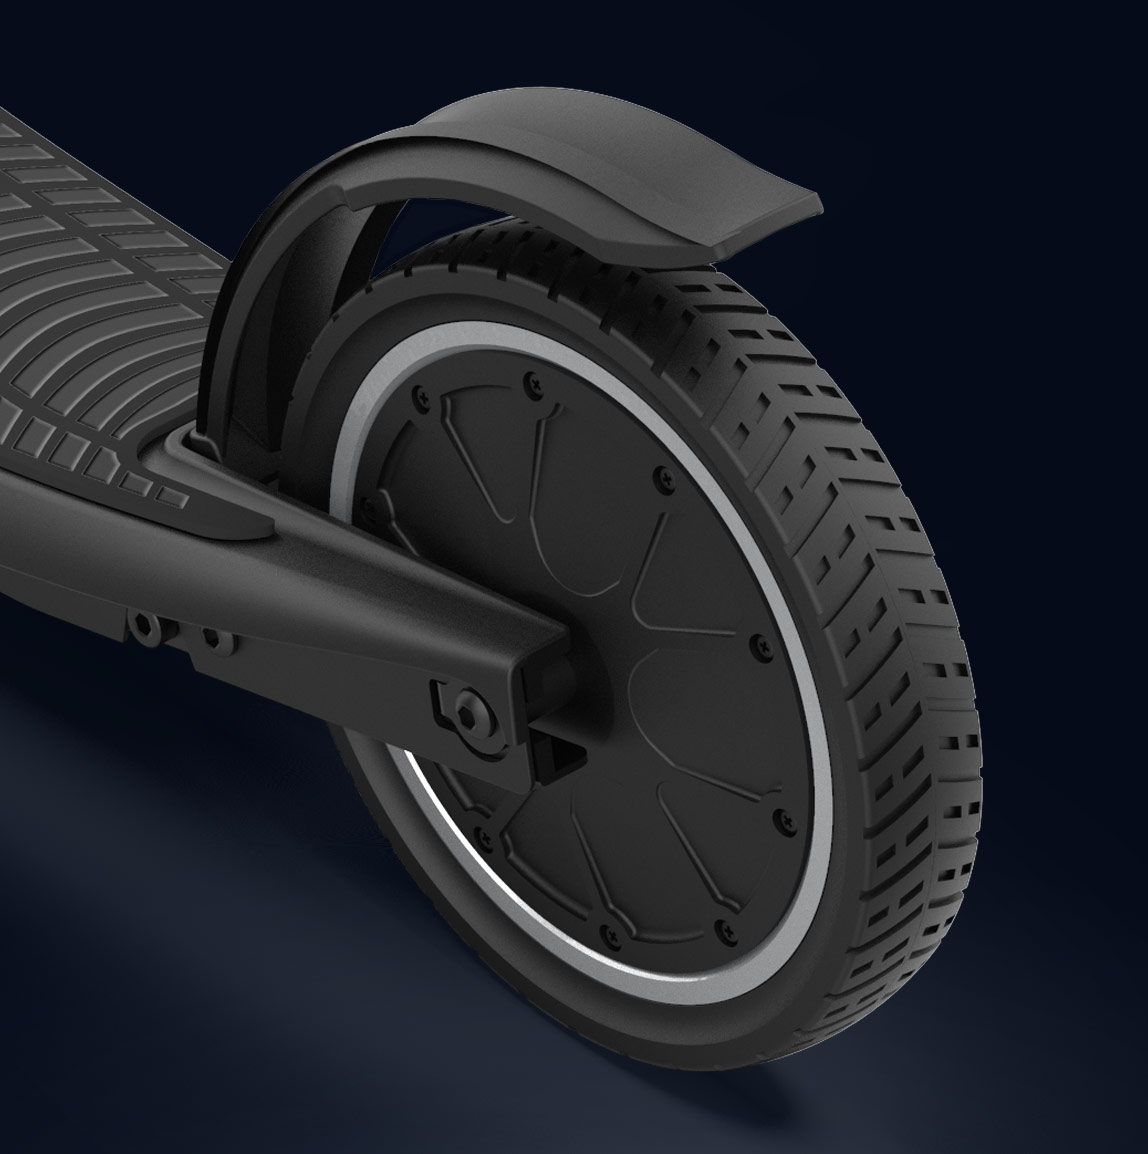 ONE-K-EMOTION-electric-scooter-puncture-free-e-scooter-ride